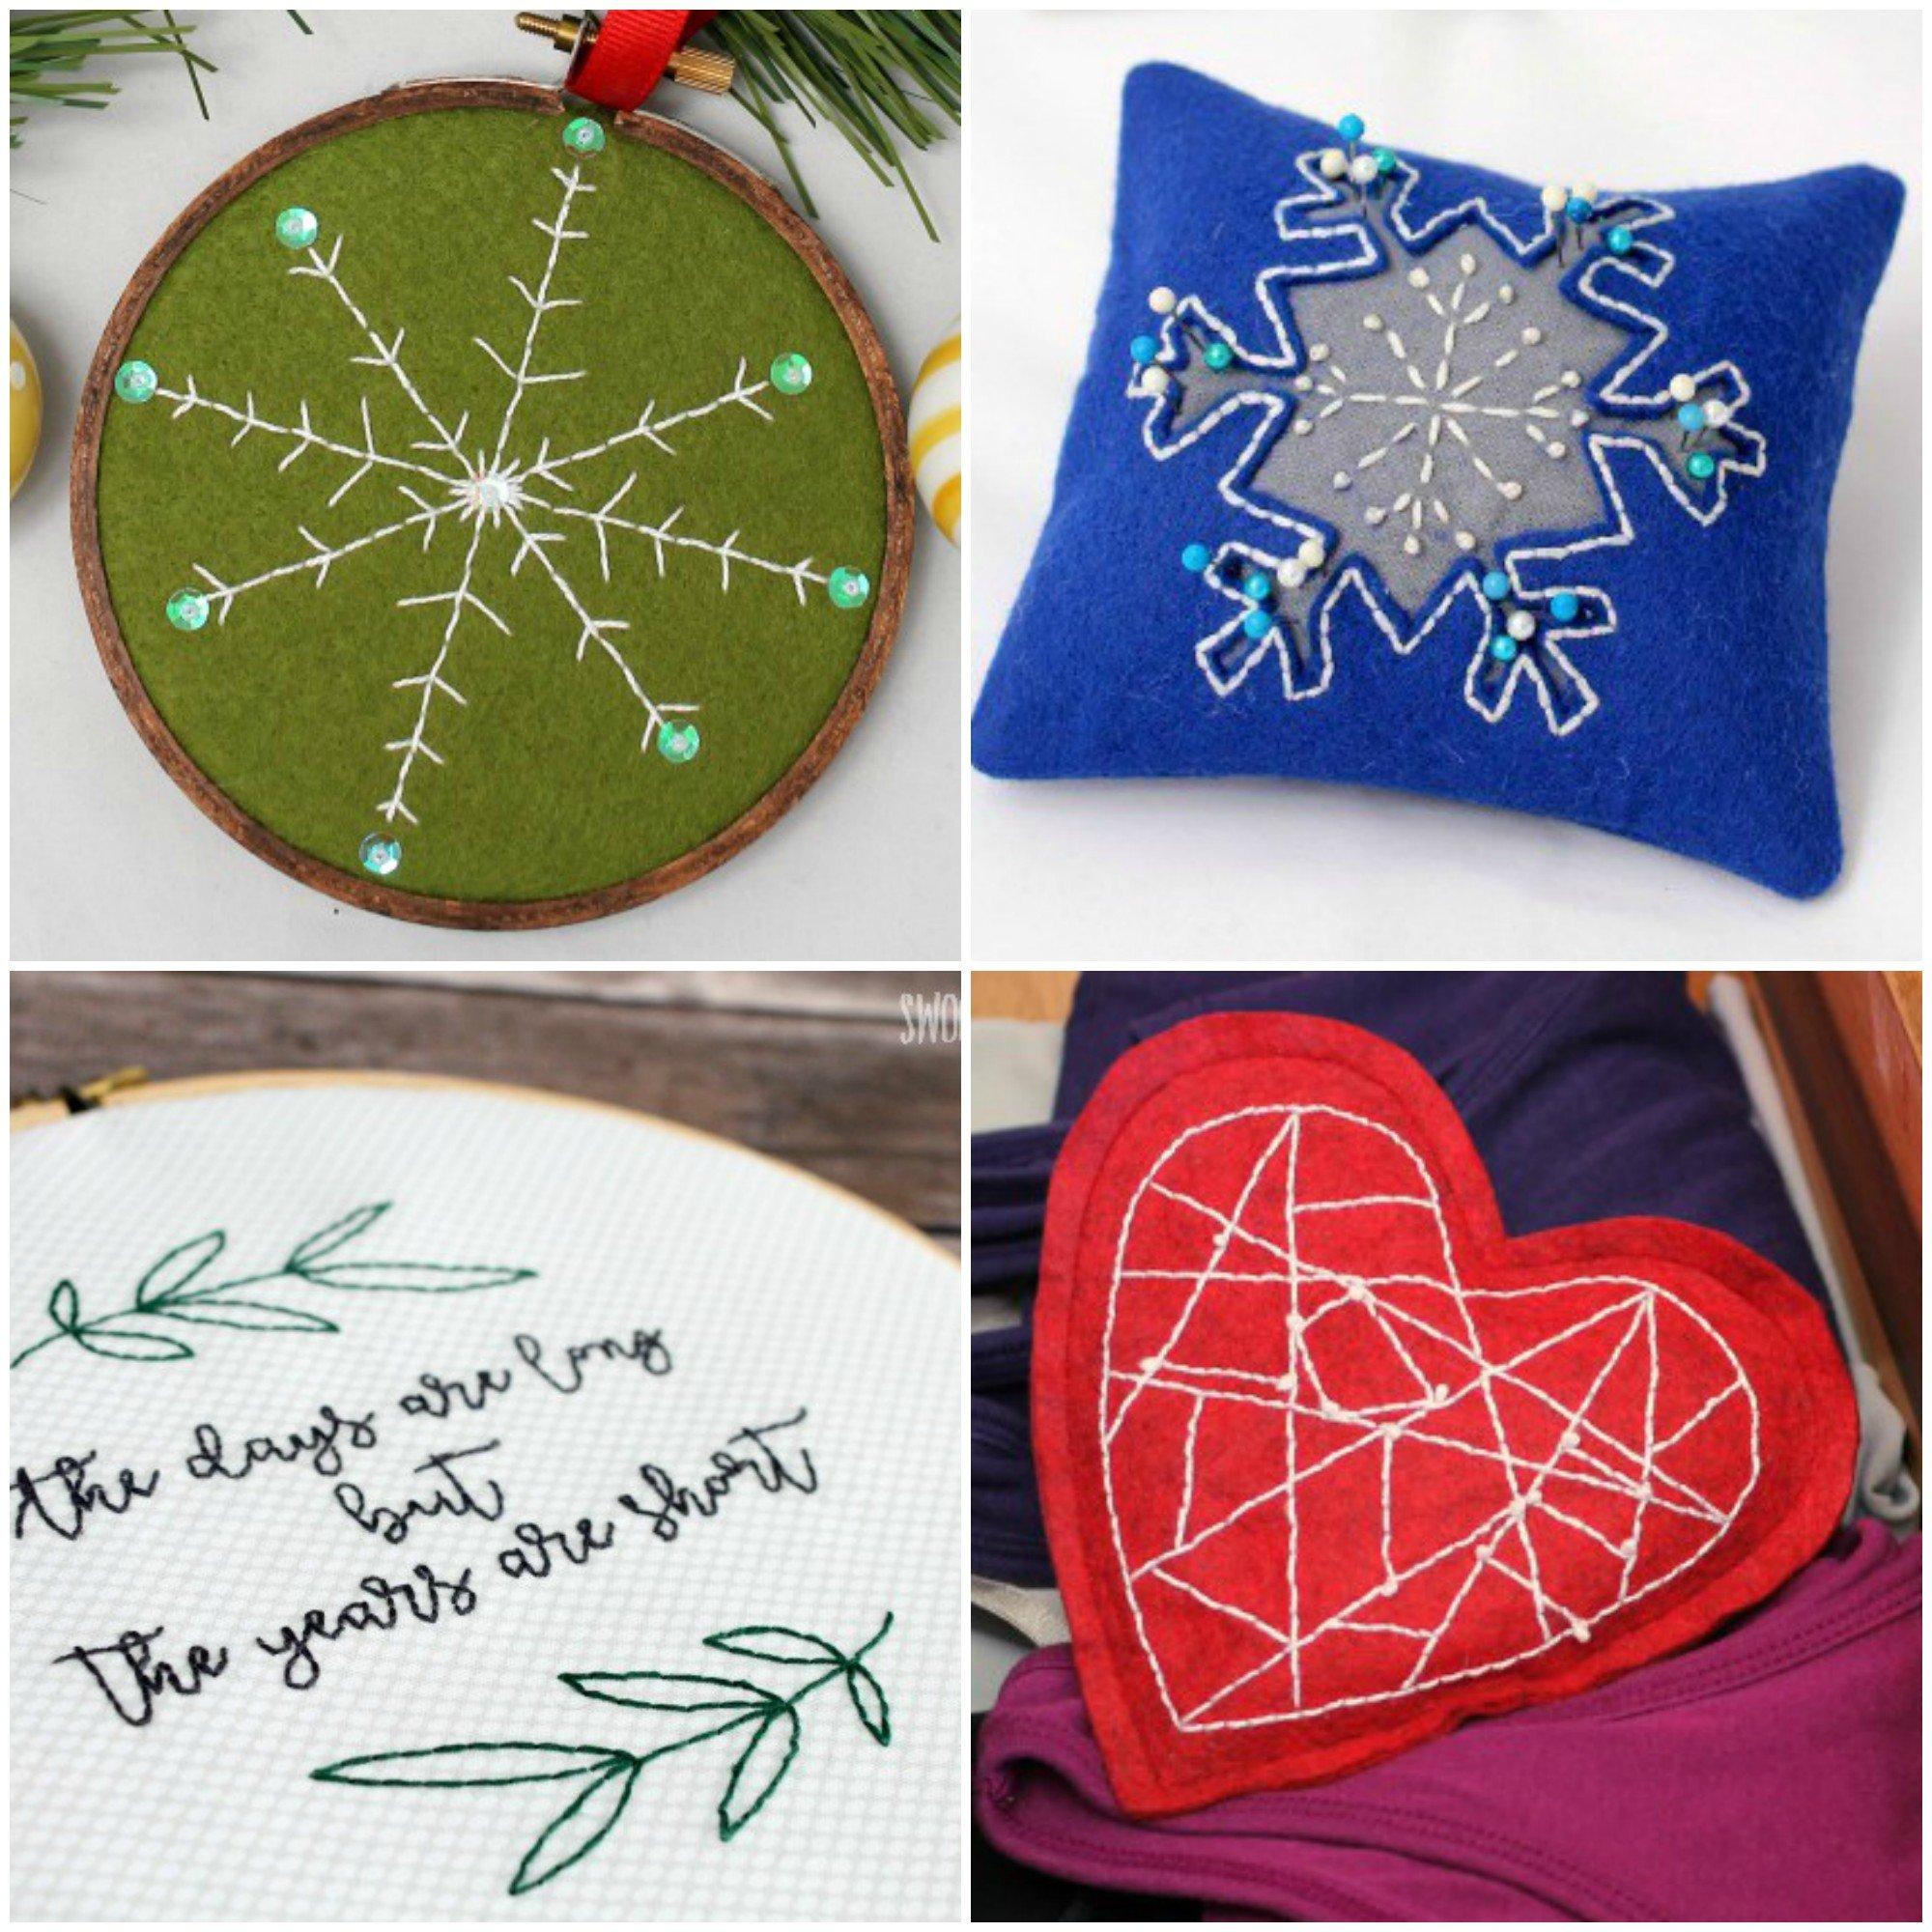 Cute stitching projects for kids